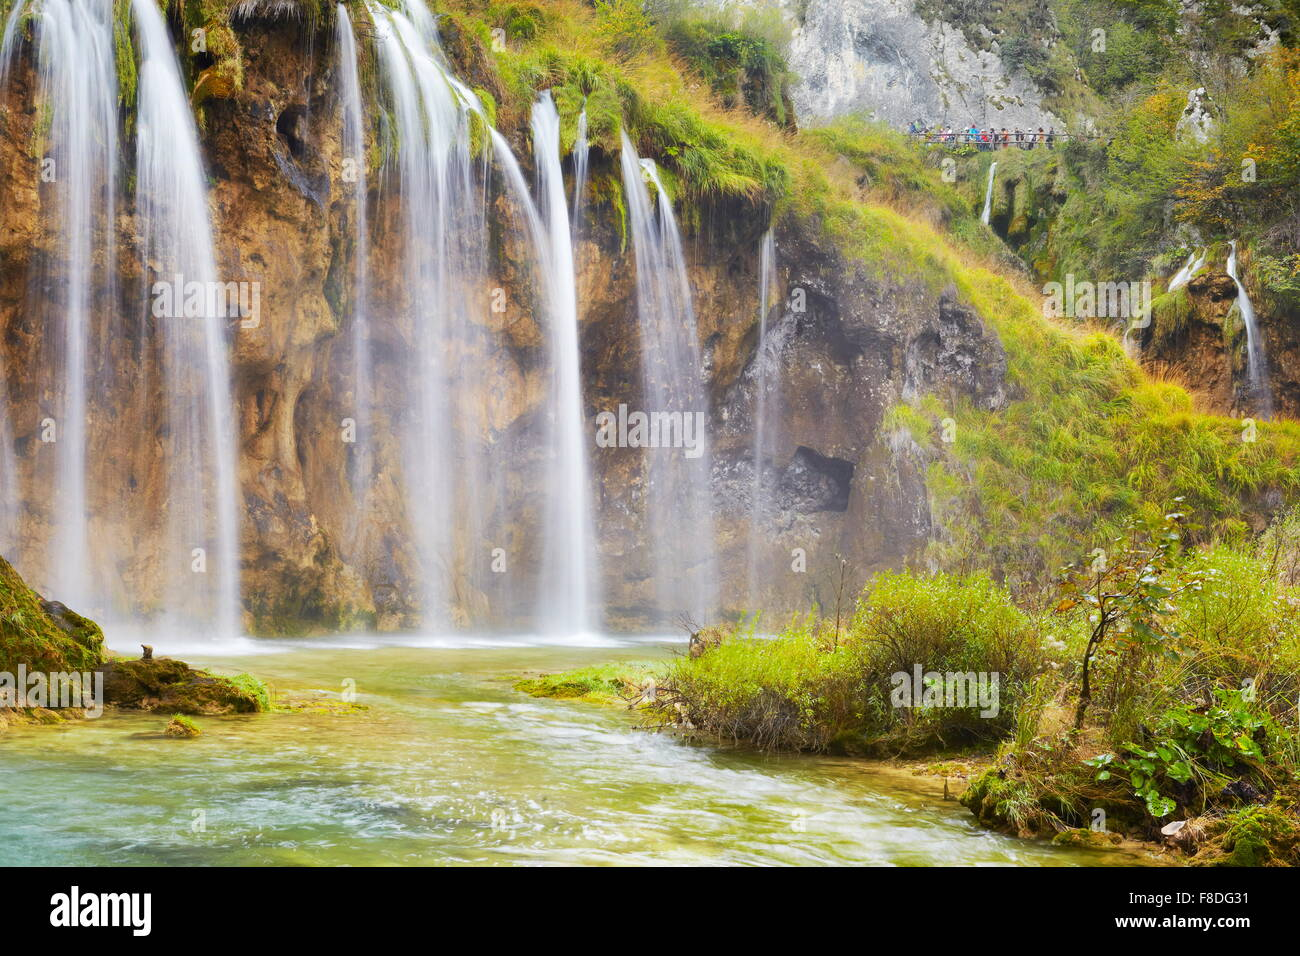 Cascades dans le parc national des Lacs de Plitvice, Croatie l'UNESCO Photo Stock